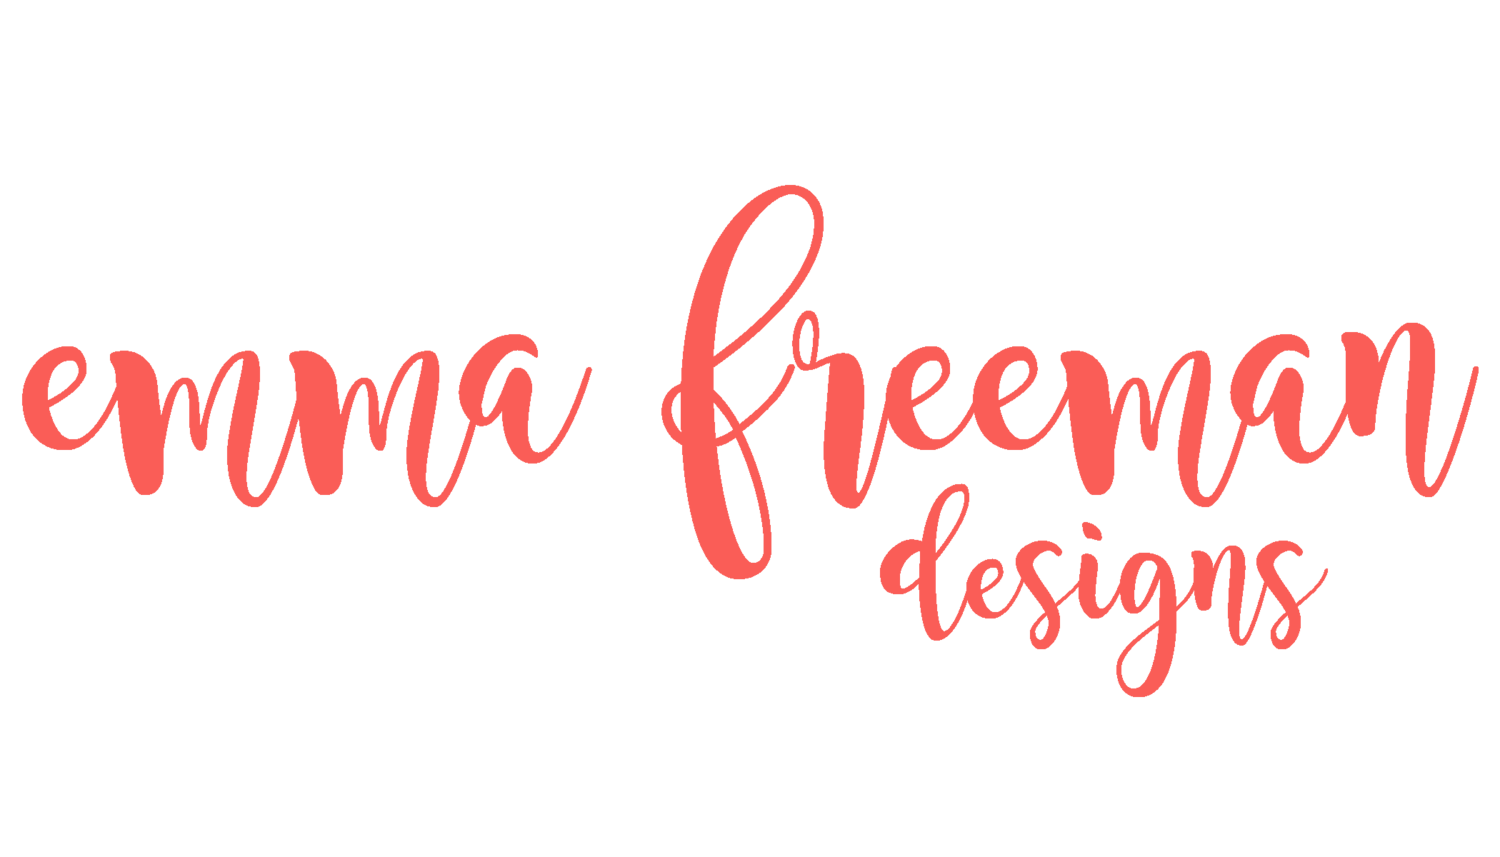 Emma Freeman Designs